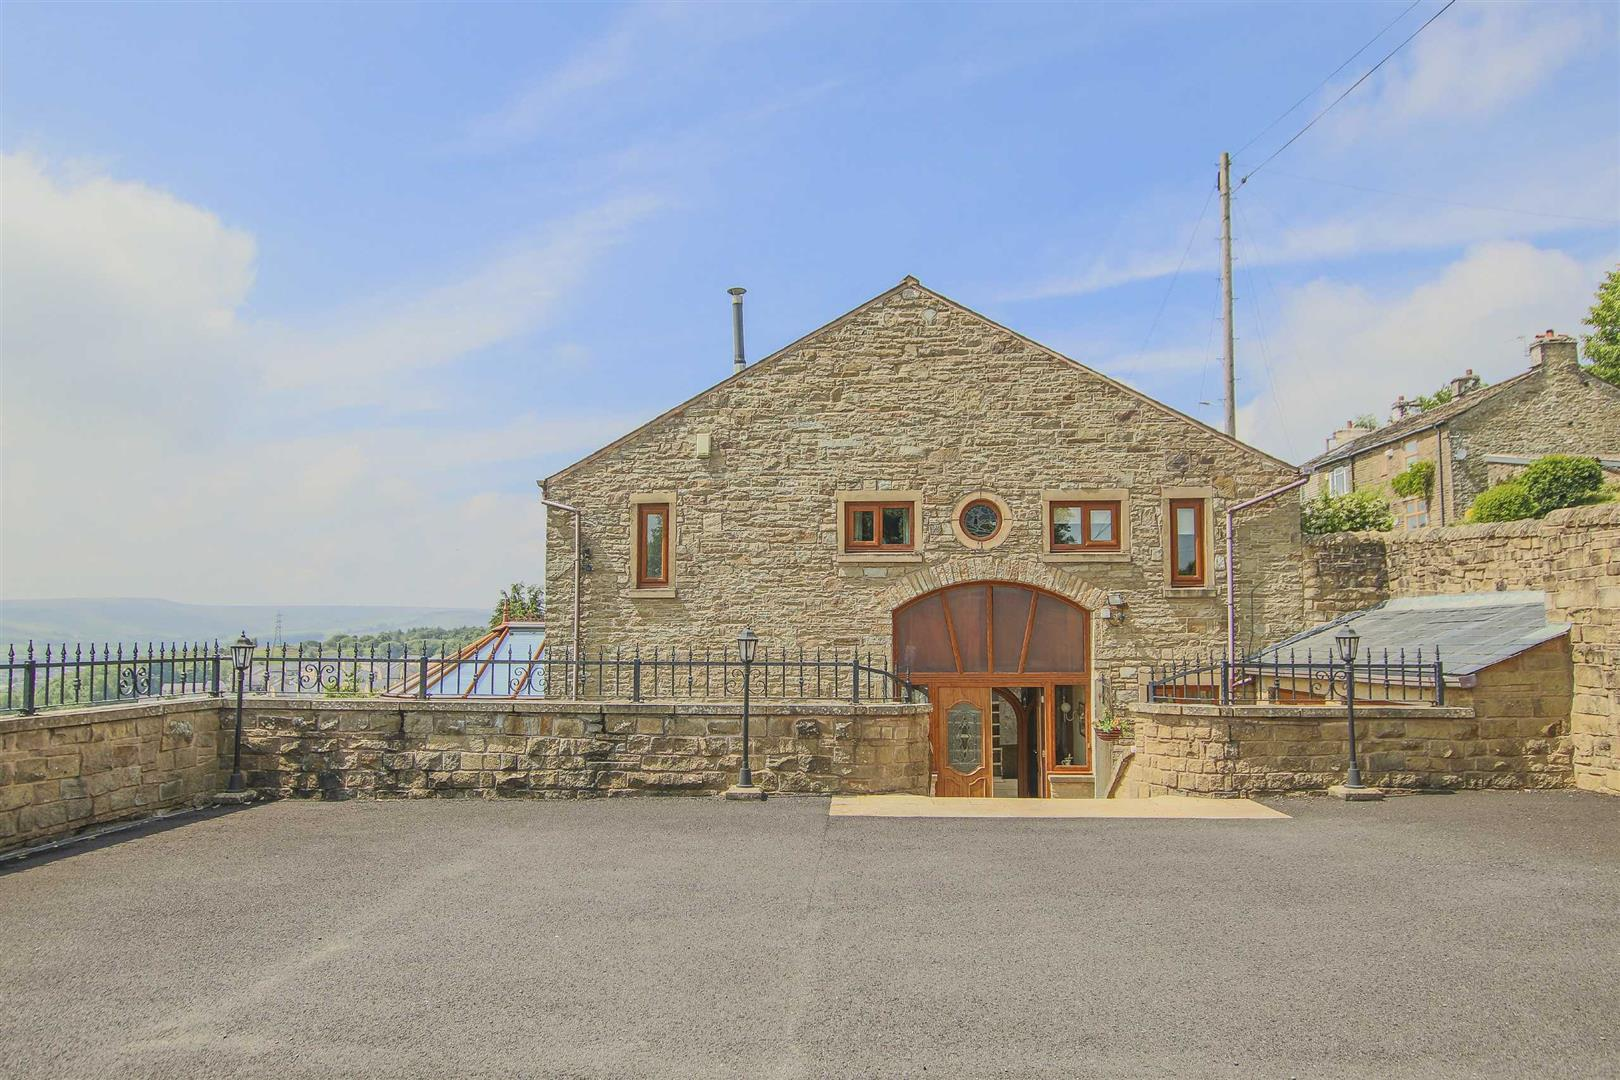 4 Bedroom Barn Conversion For Sale - p033135_38.jpg